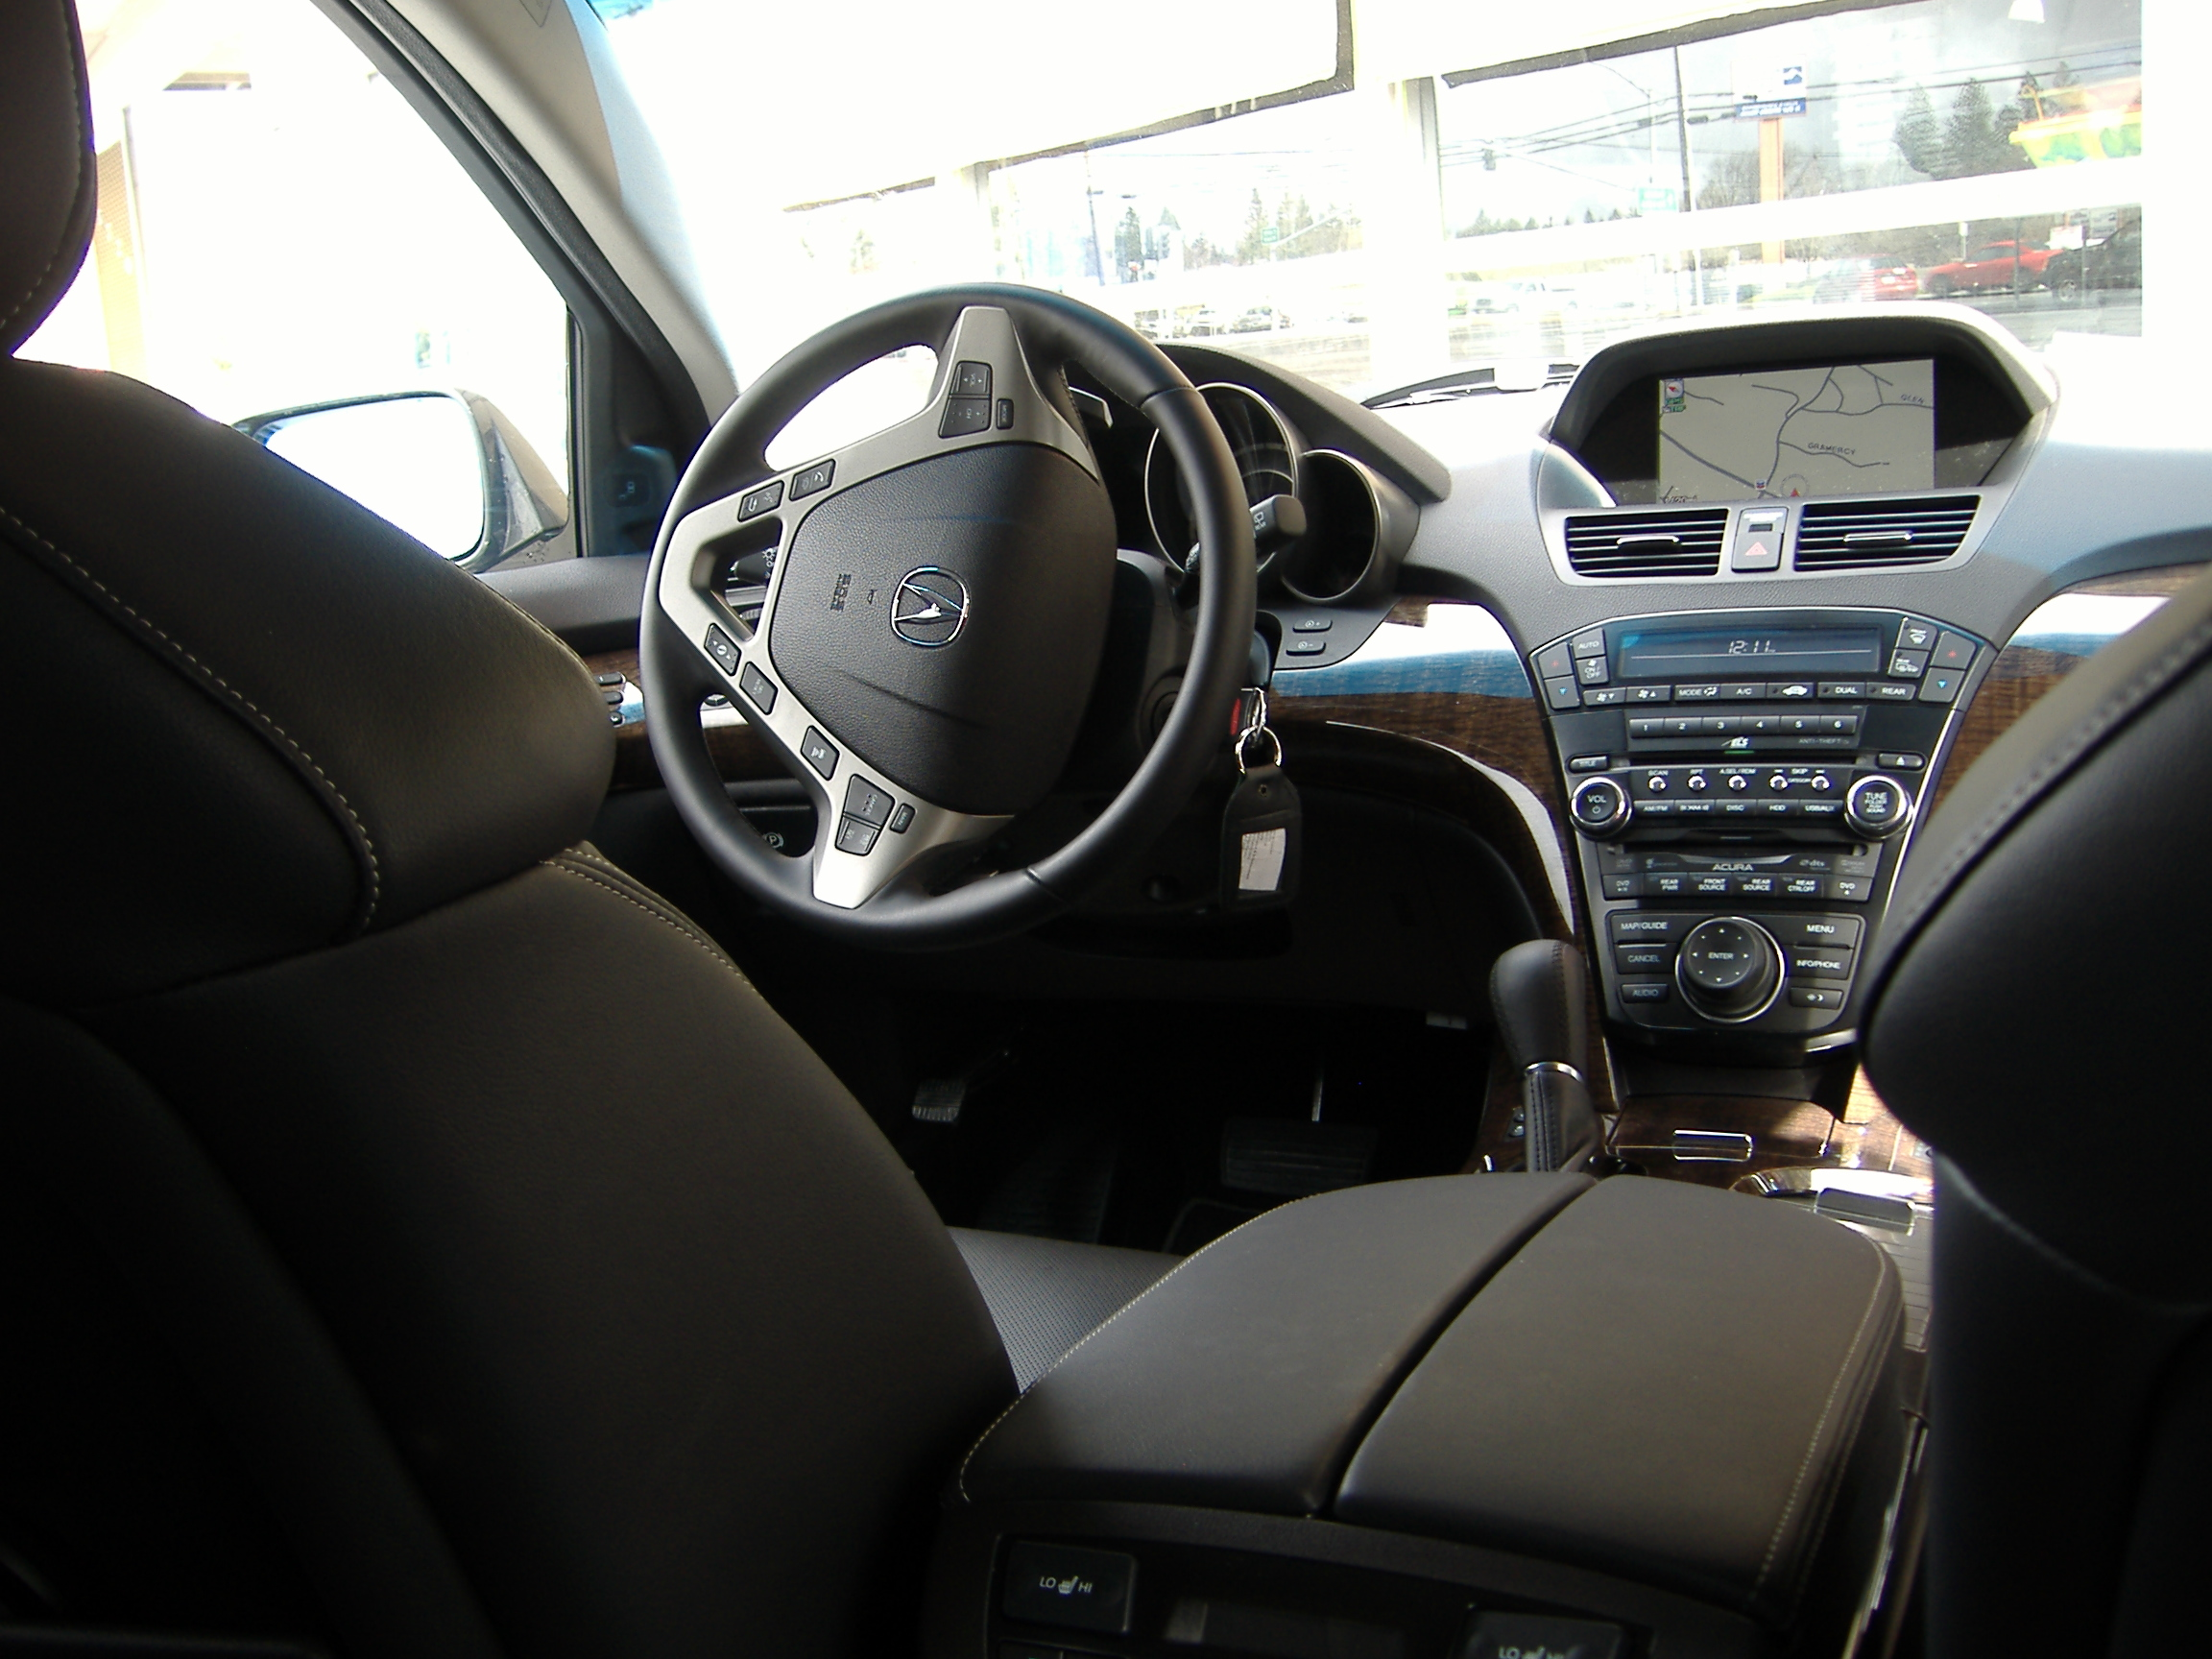 acura car mdx seat side lady row vehicles suv the